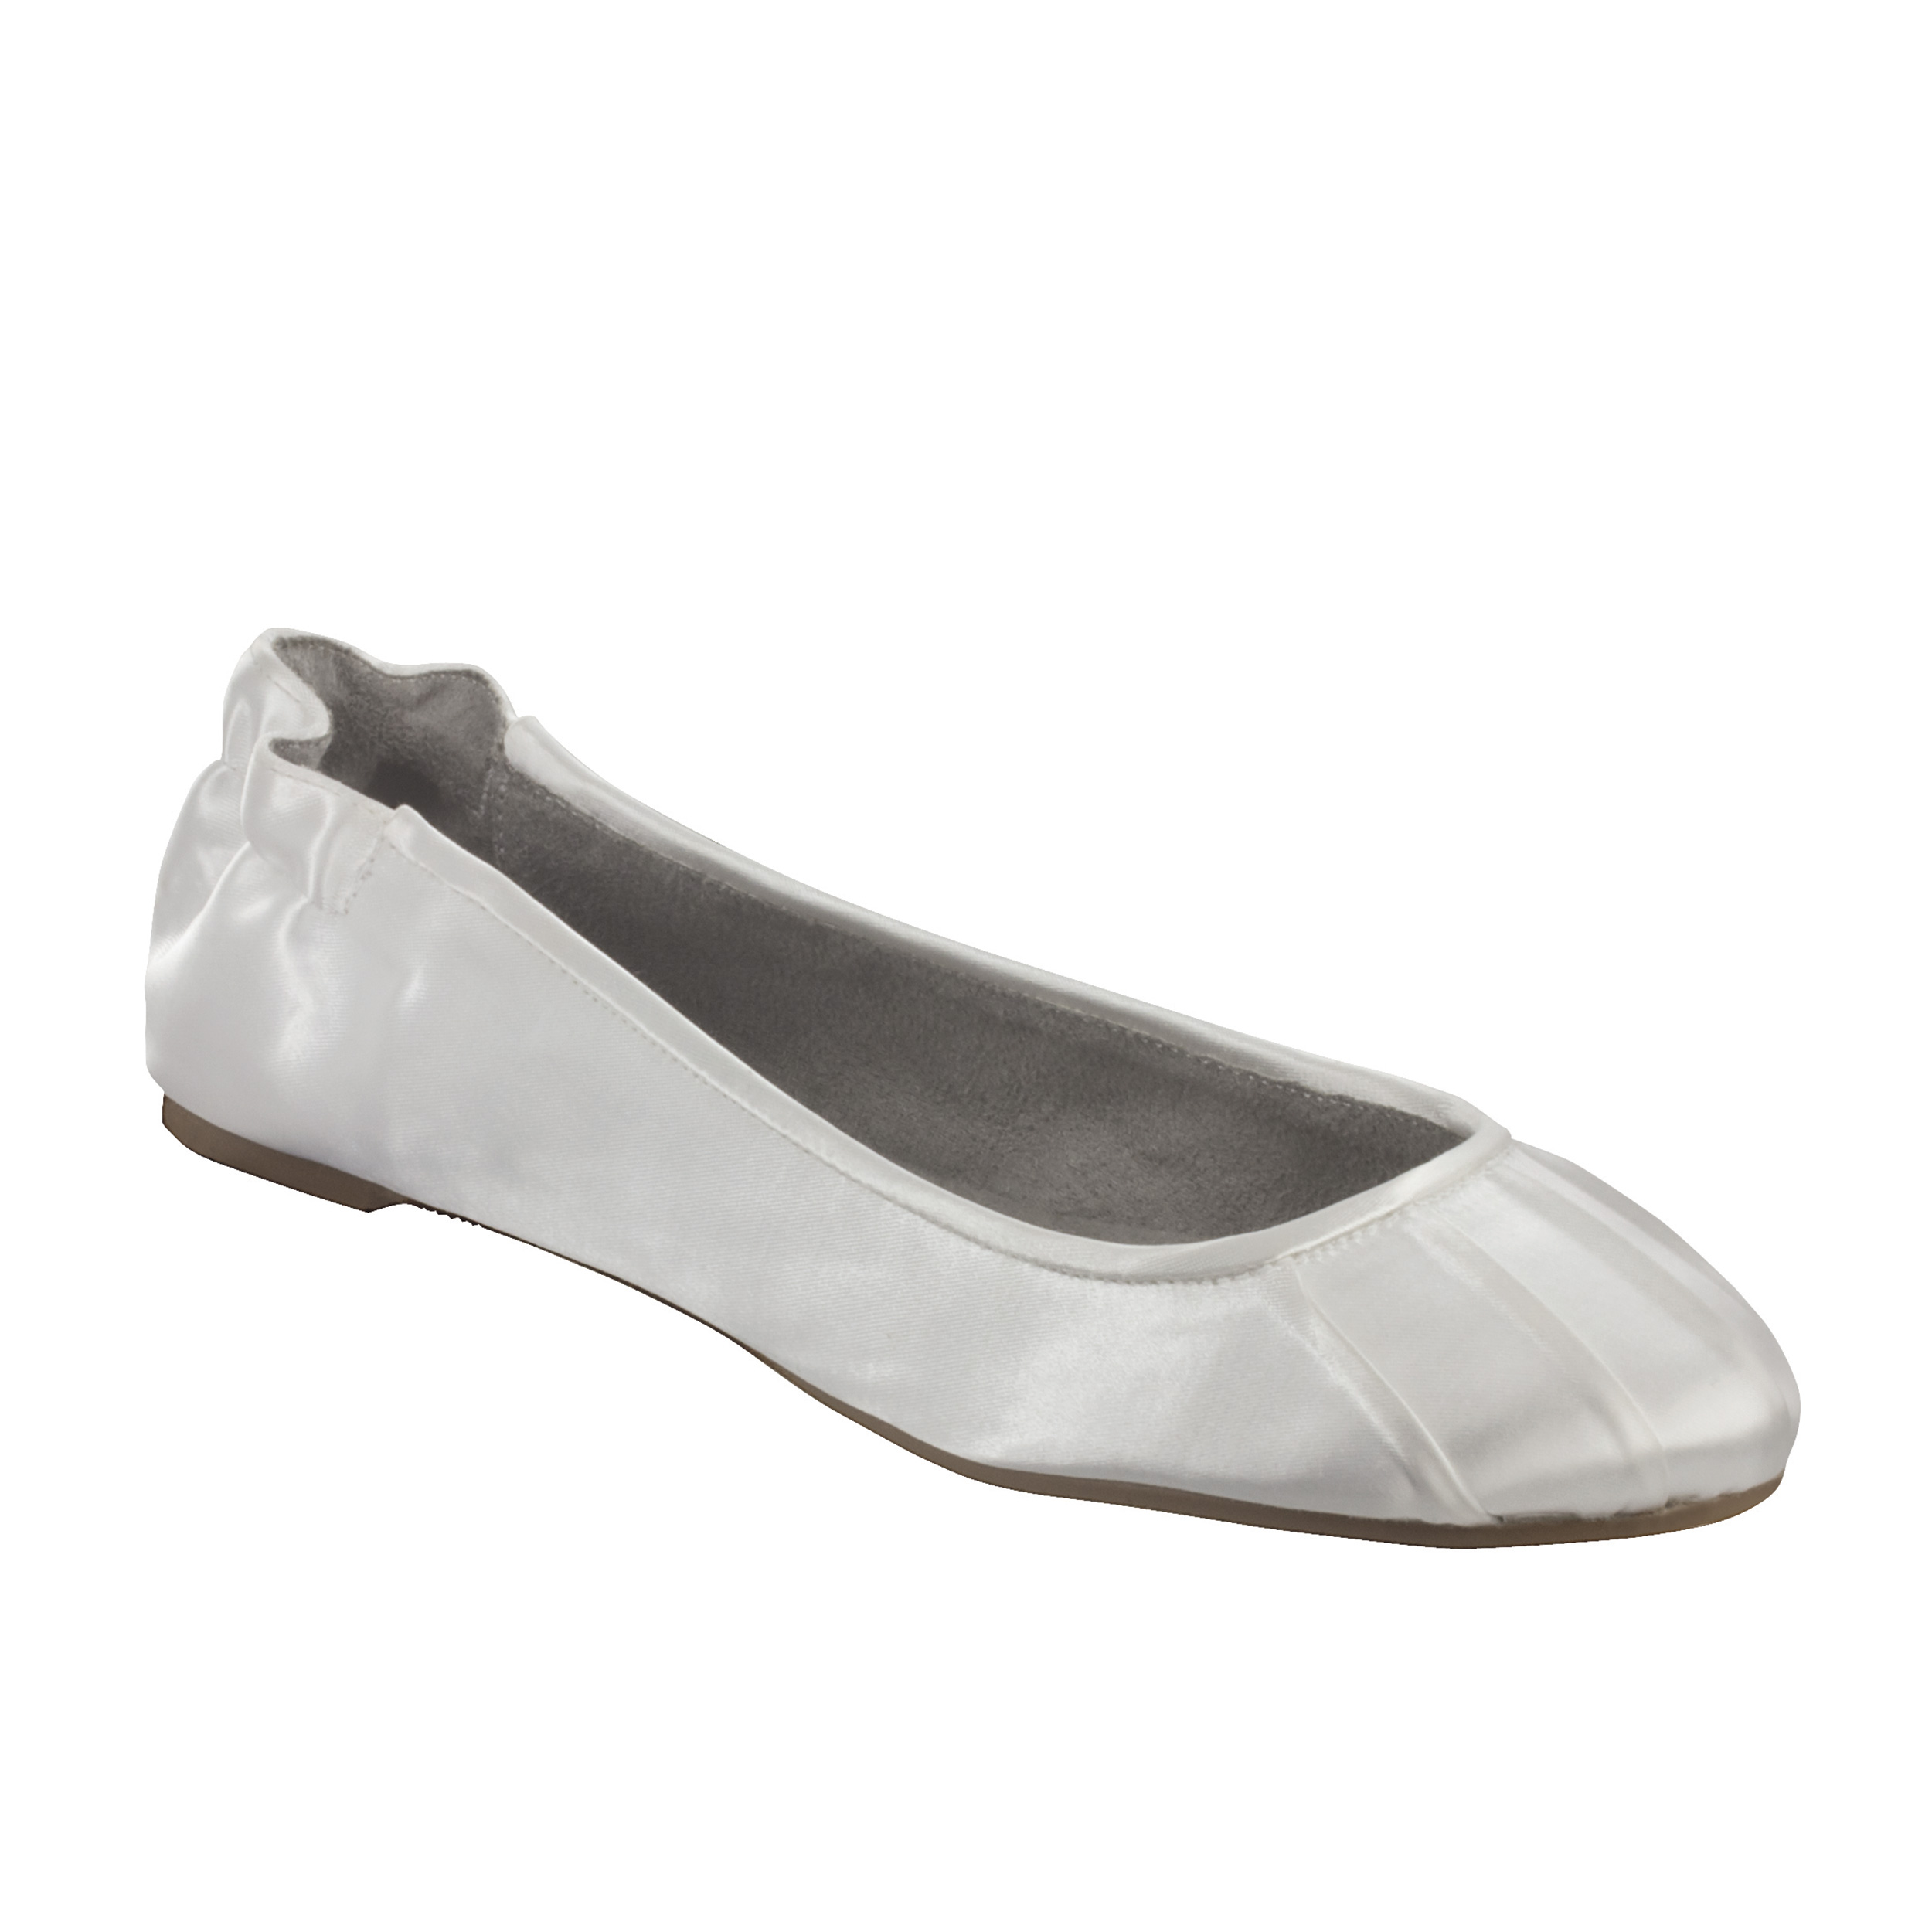 Satin Bridal Ballet Slippers  for weddings